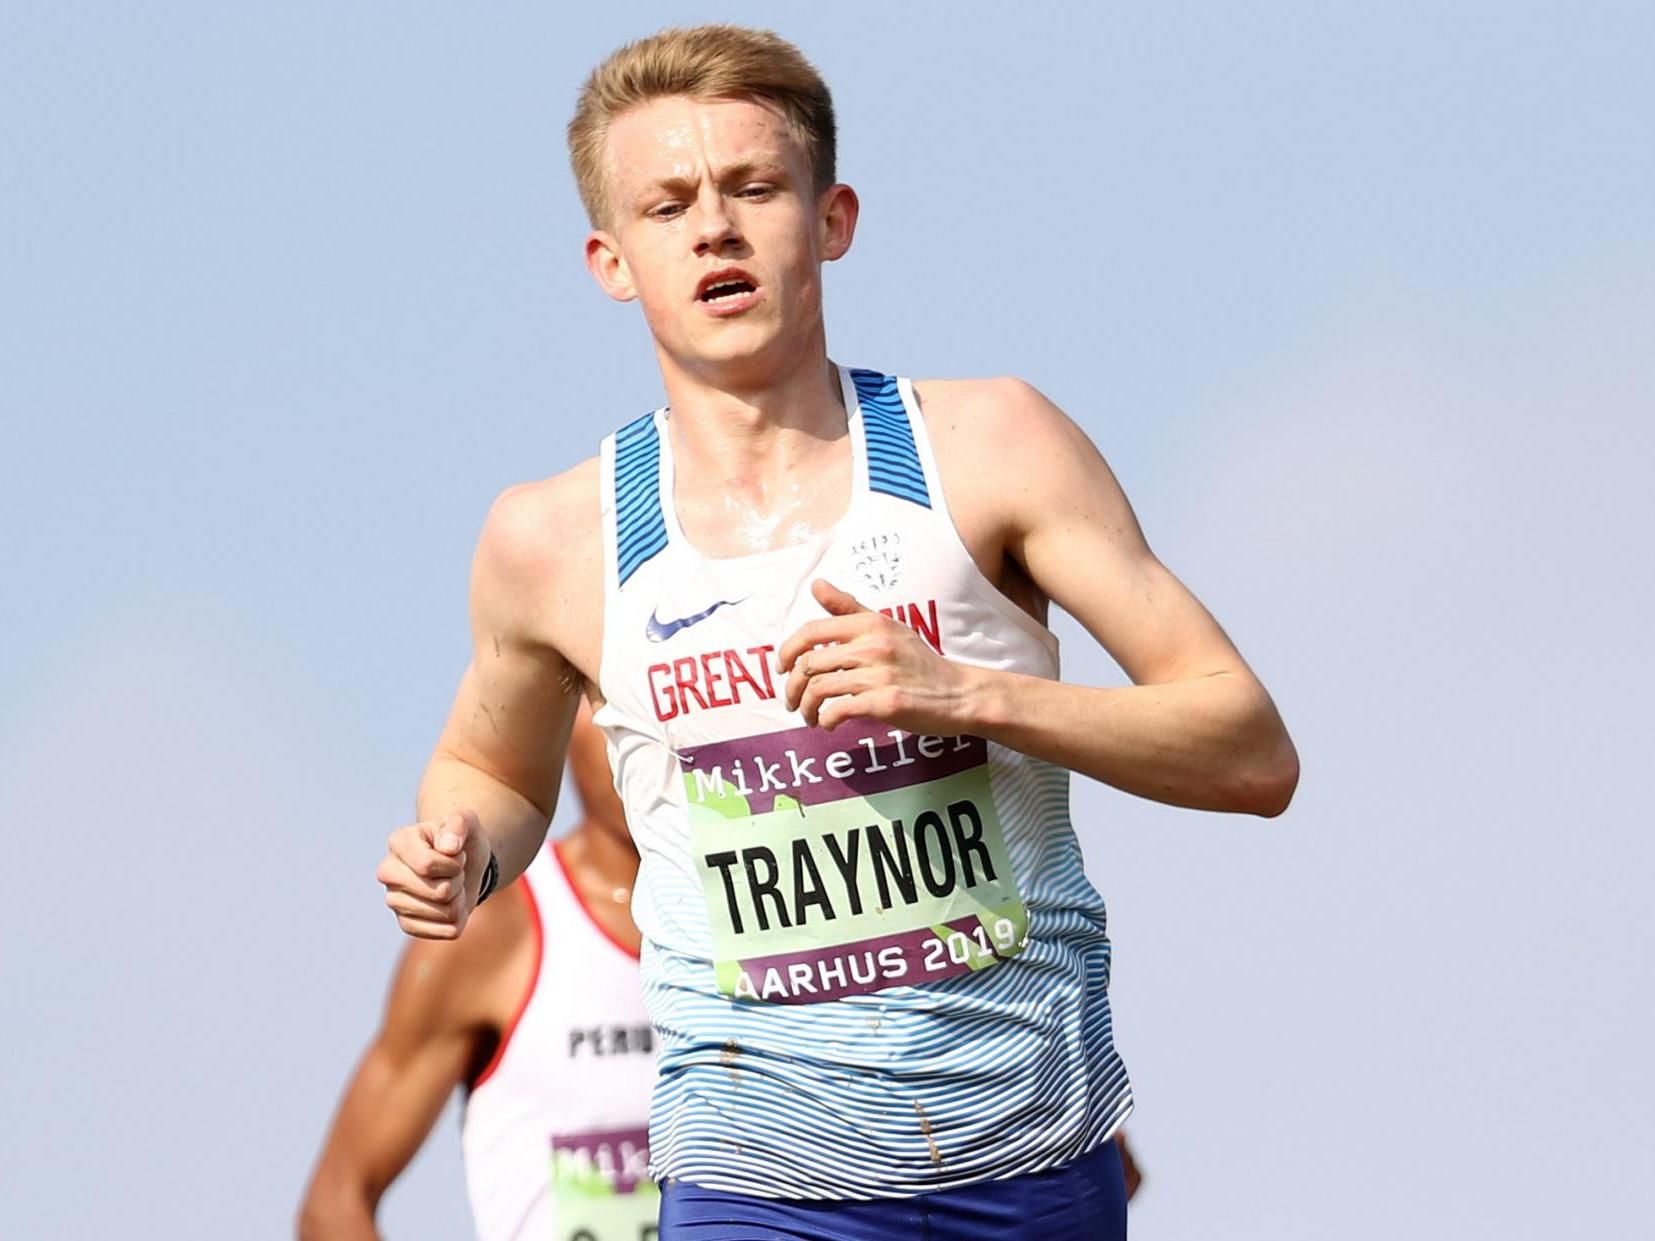 Luke Traynor: GB cross-country runner faces ban after testing positive for cocaine